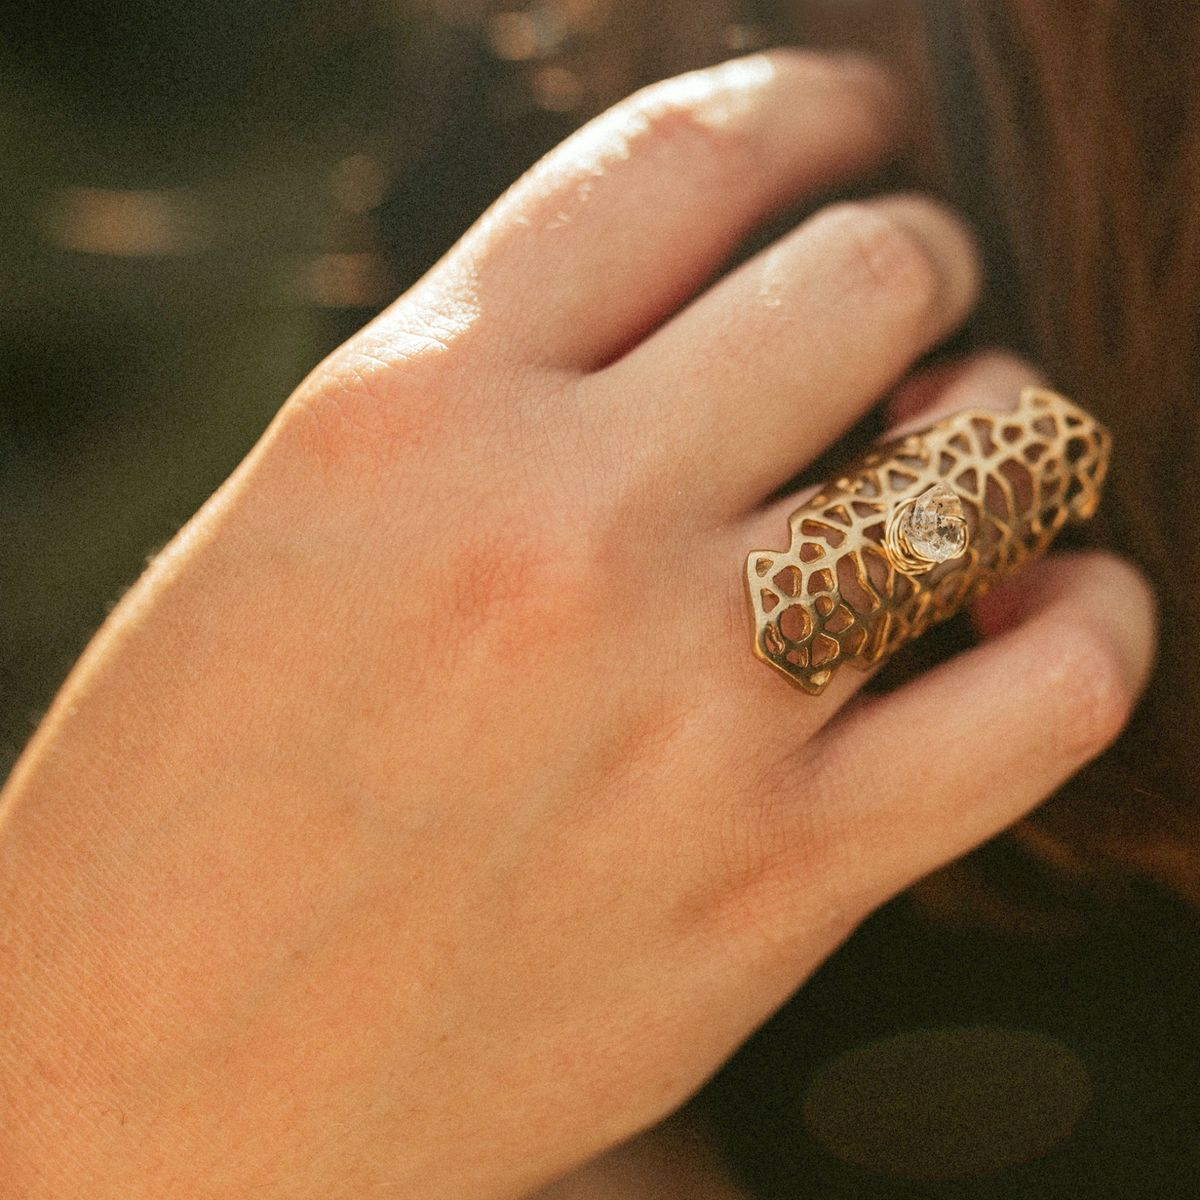 Herkimer Filigree Ring - product images  of